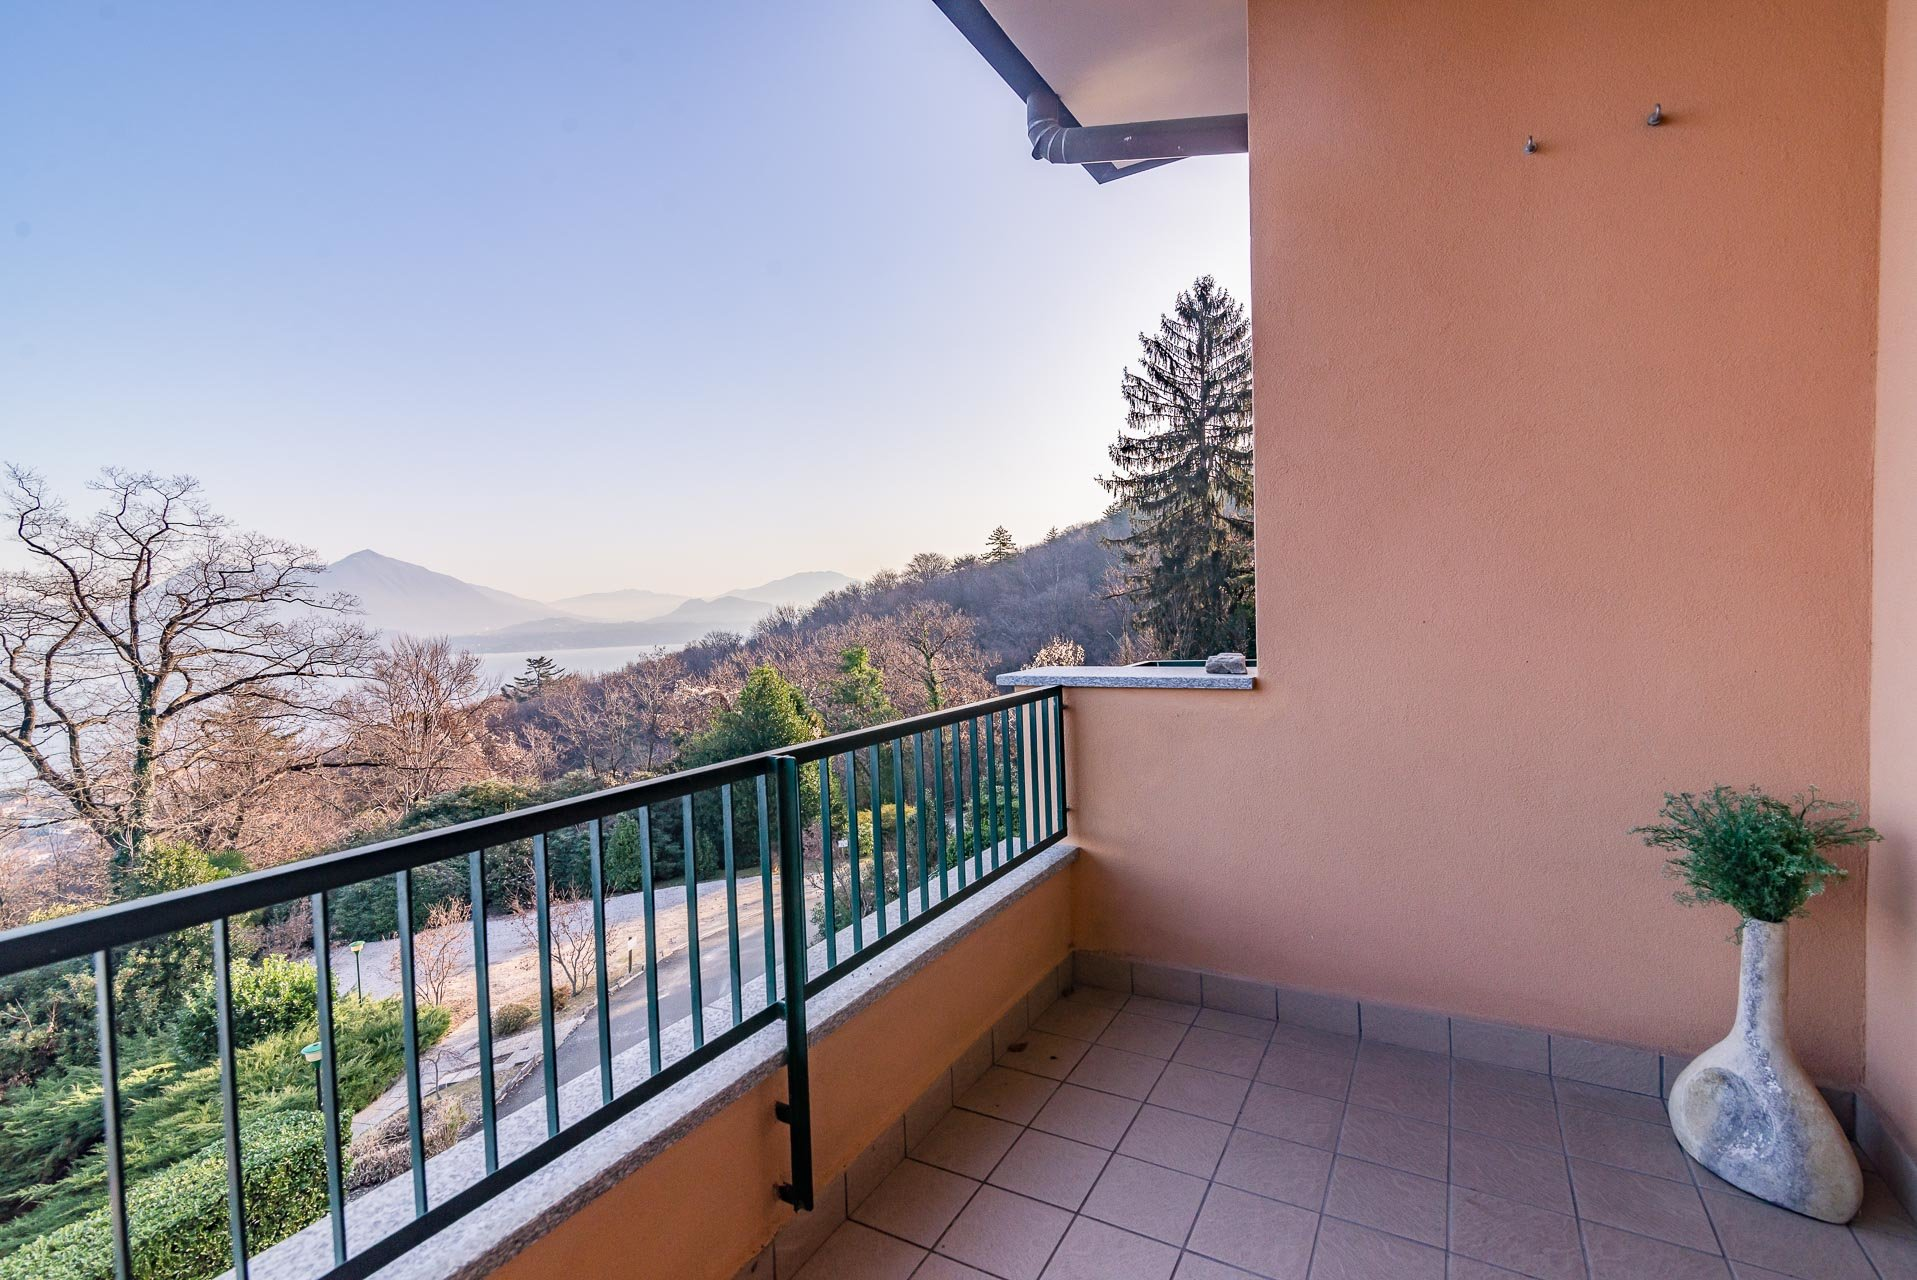 Apartment for sale in Stresa in a residence - balcony with panoramic  view